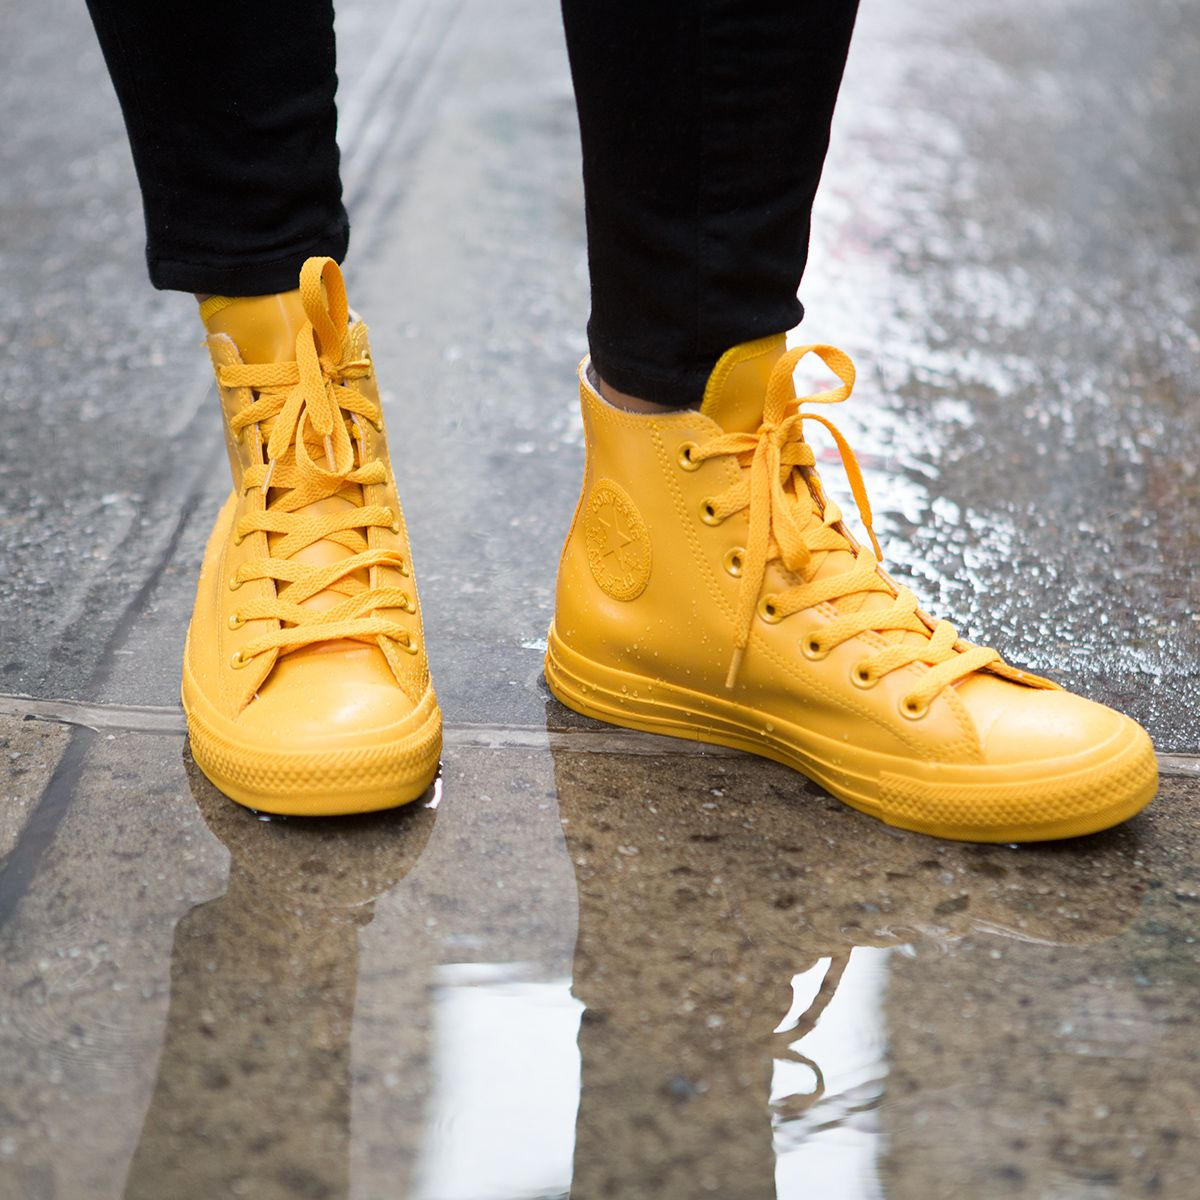 converse all star yellow high-tops